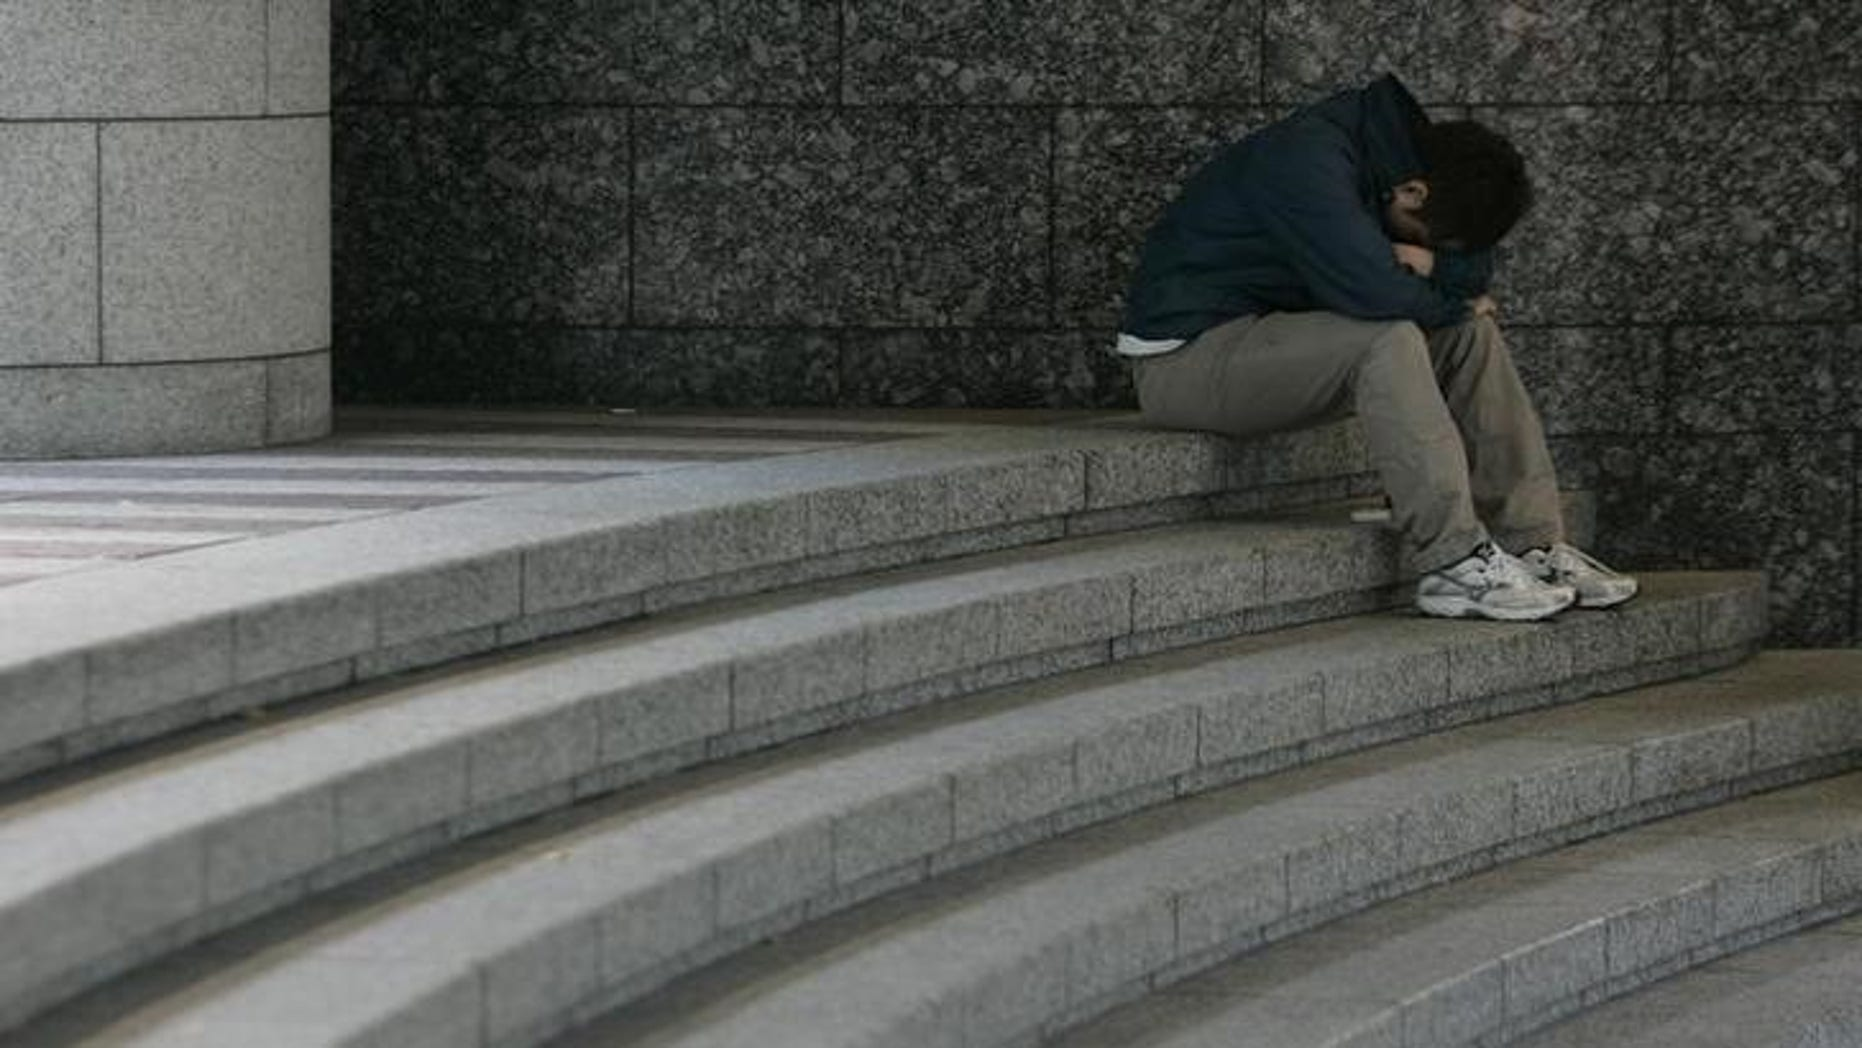 A man sits hunched over on a staircase in Tokyo